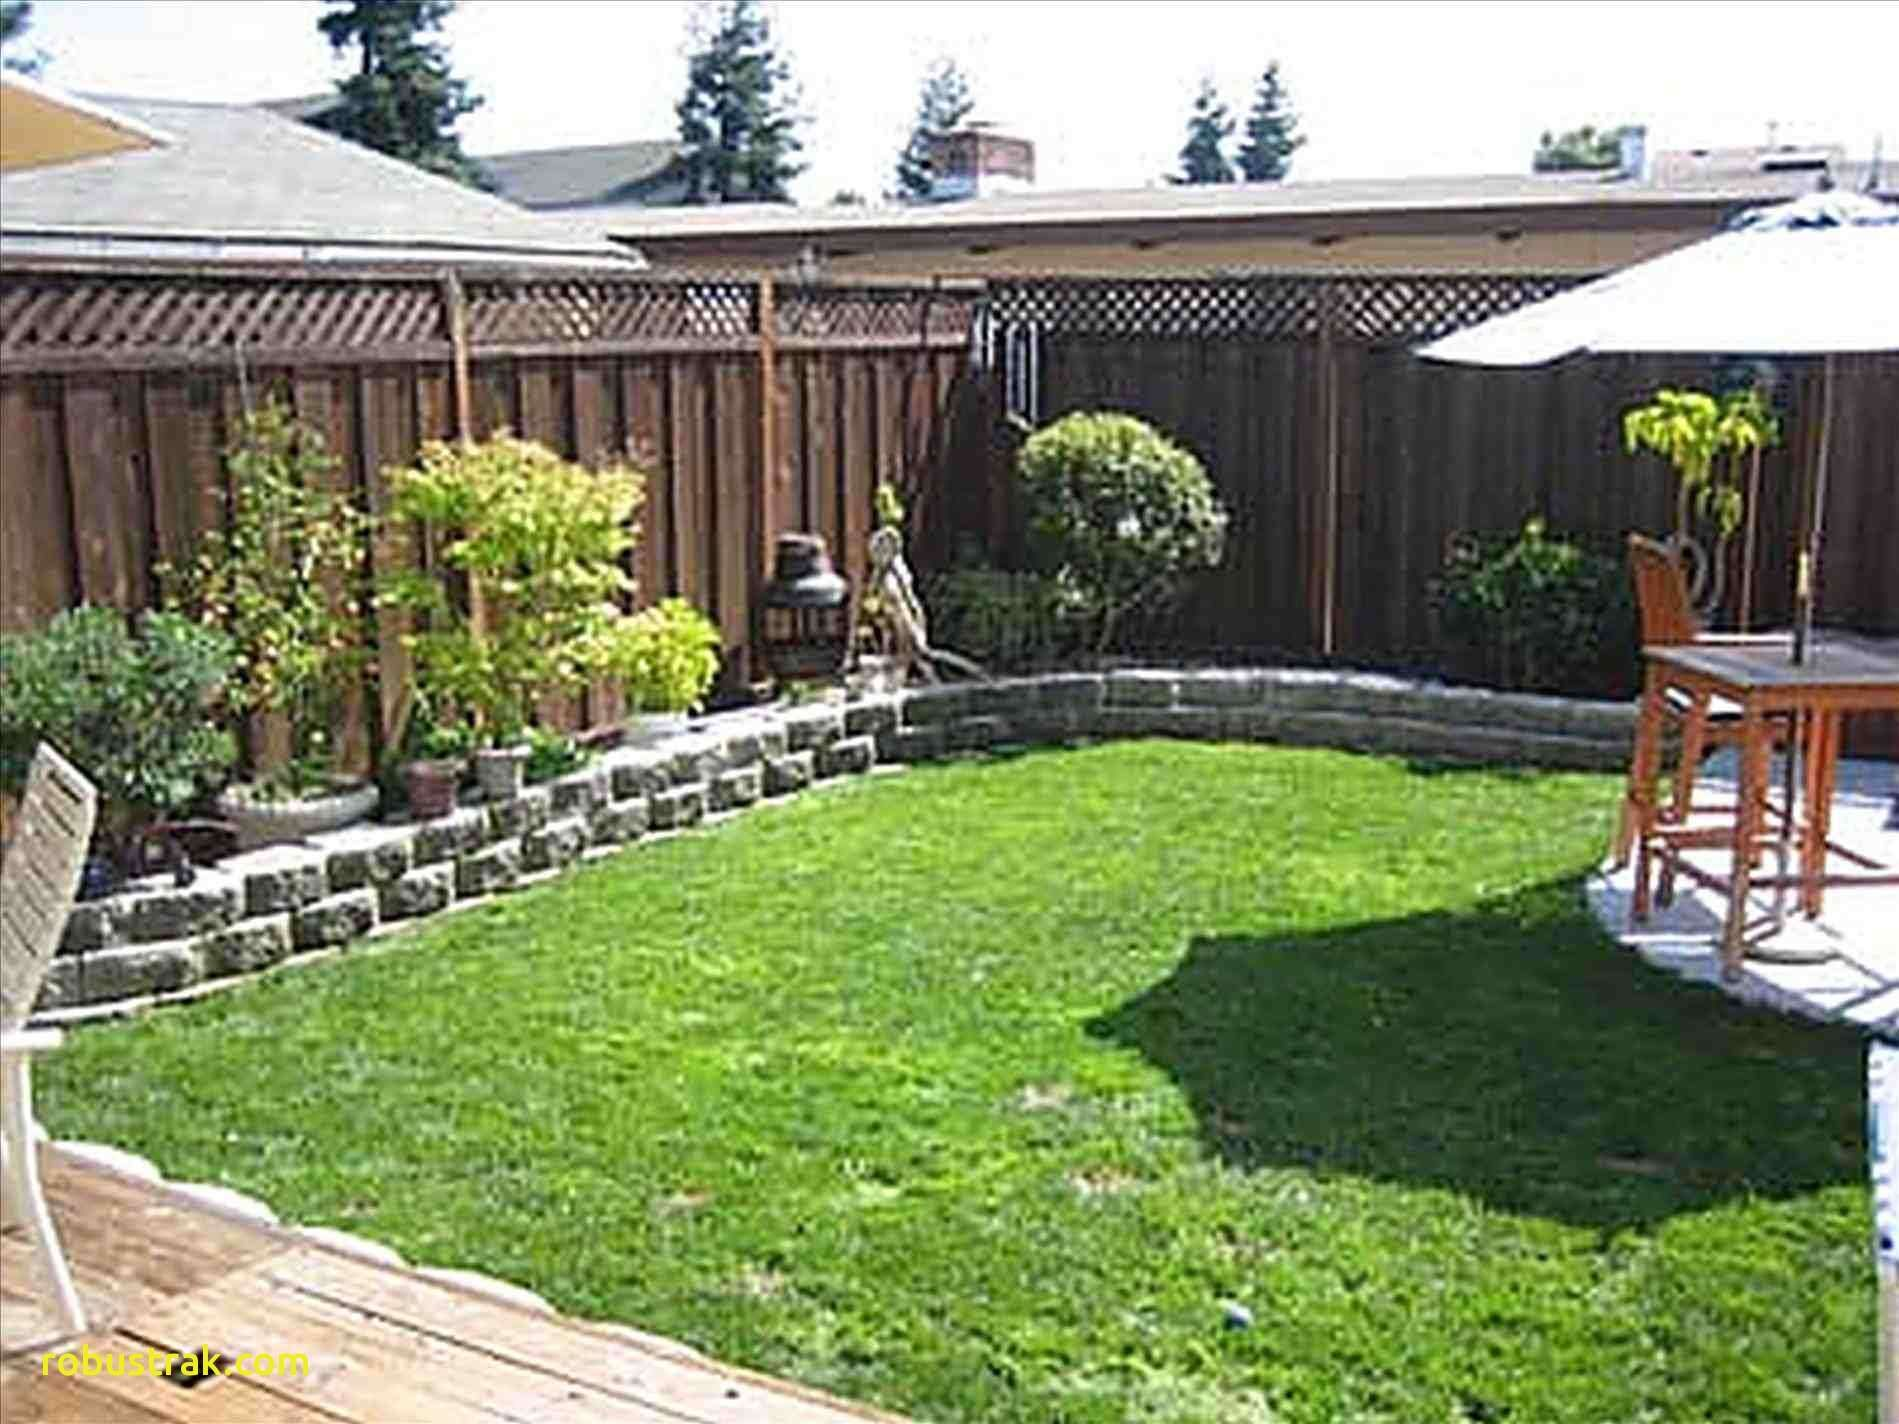 Exciting Backyard Oasis Ideas A Bud Best Image